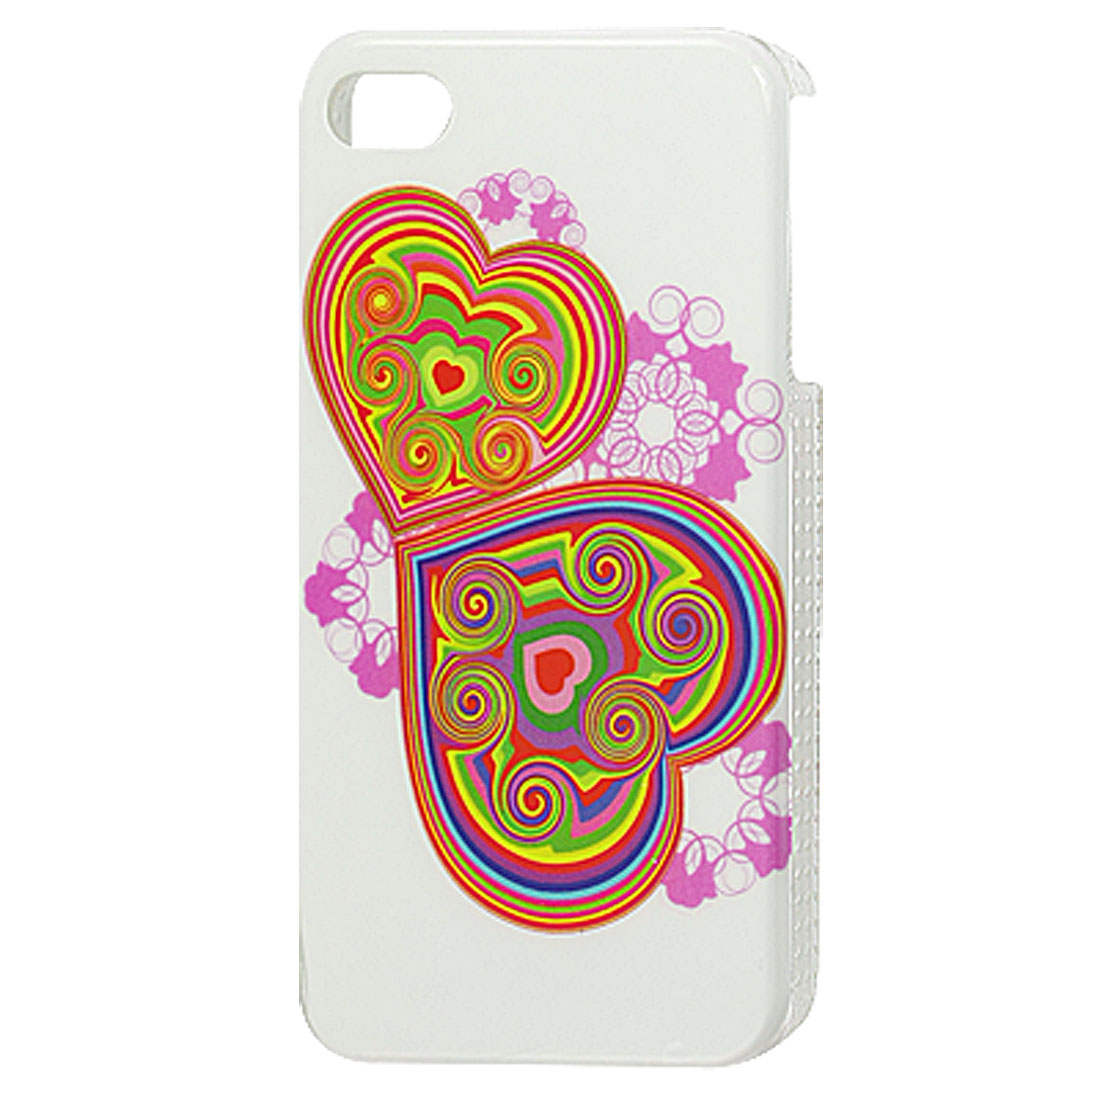 IMD Double Heart Print Plastic Back Case Shell White for iPhone 4 4G 4S